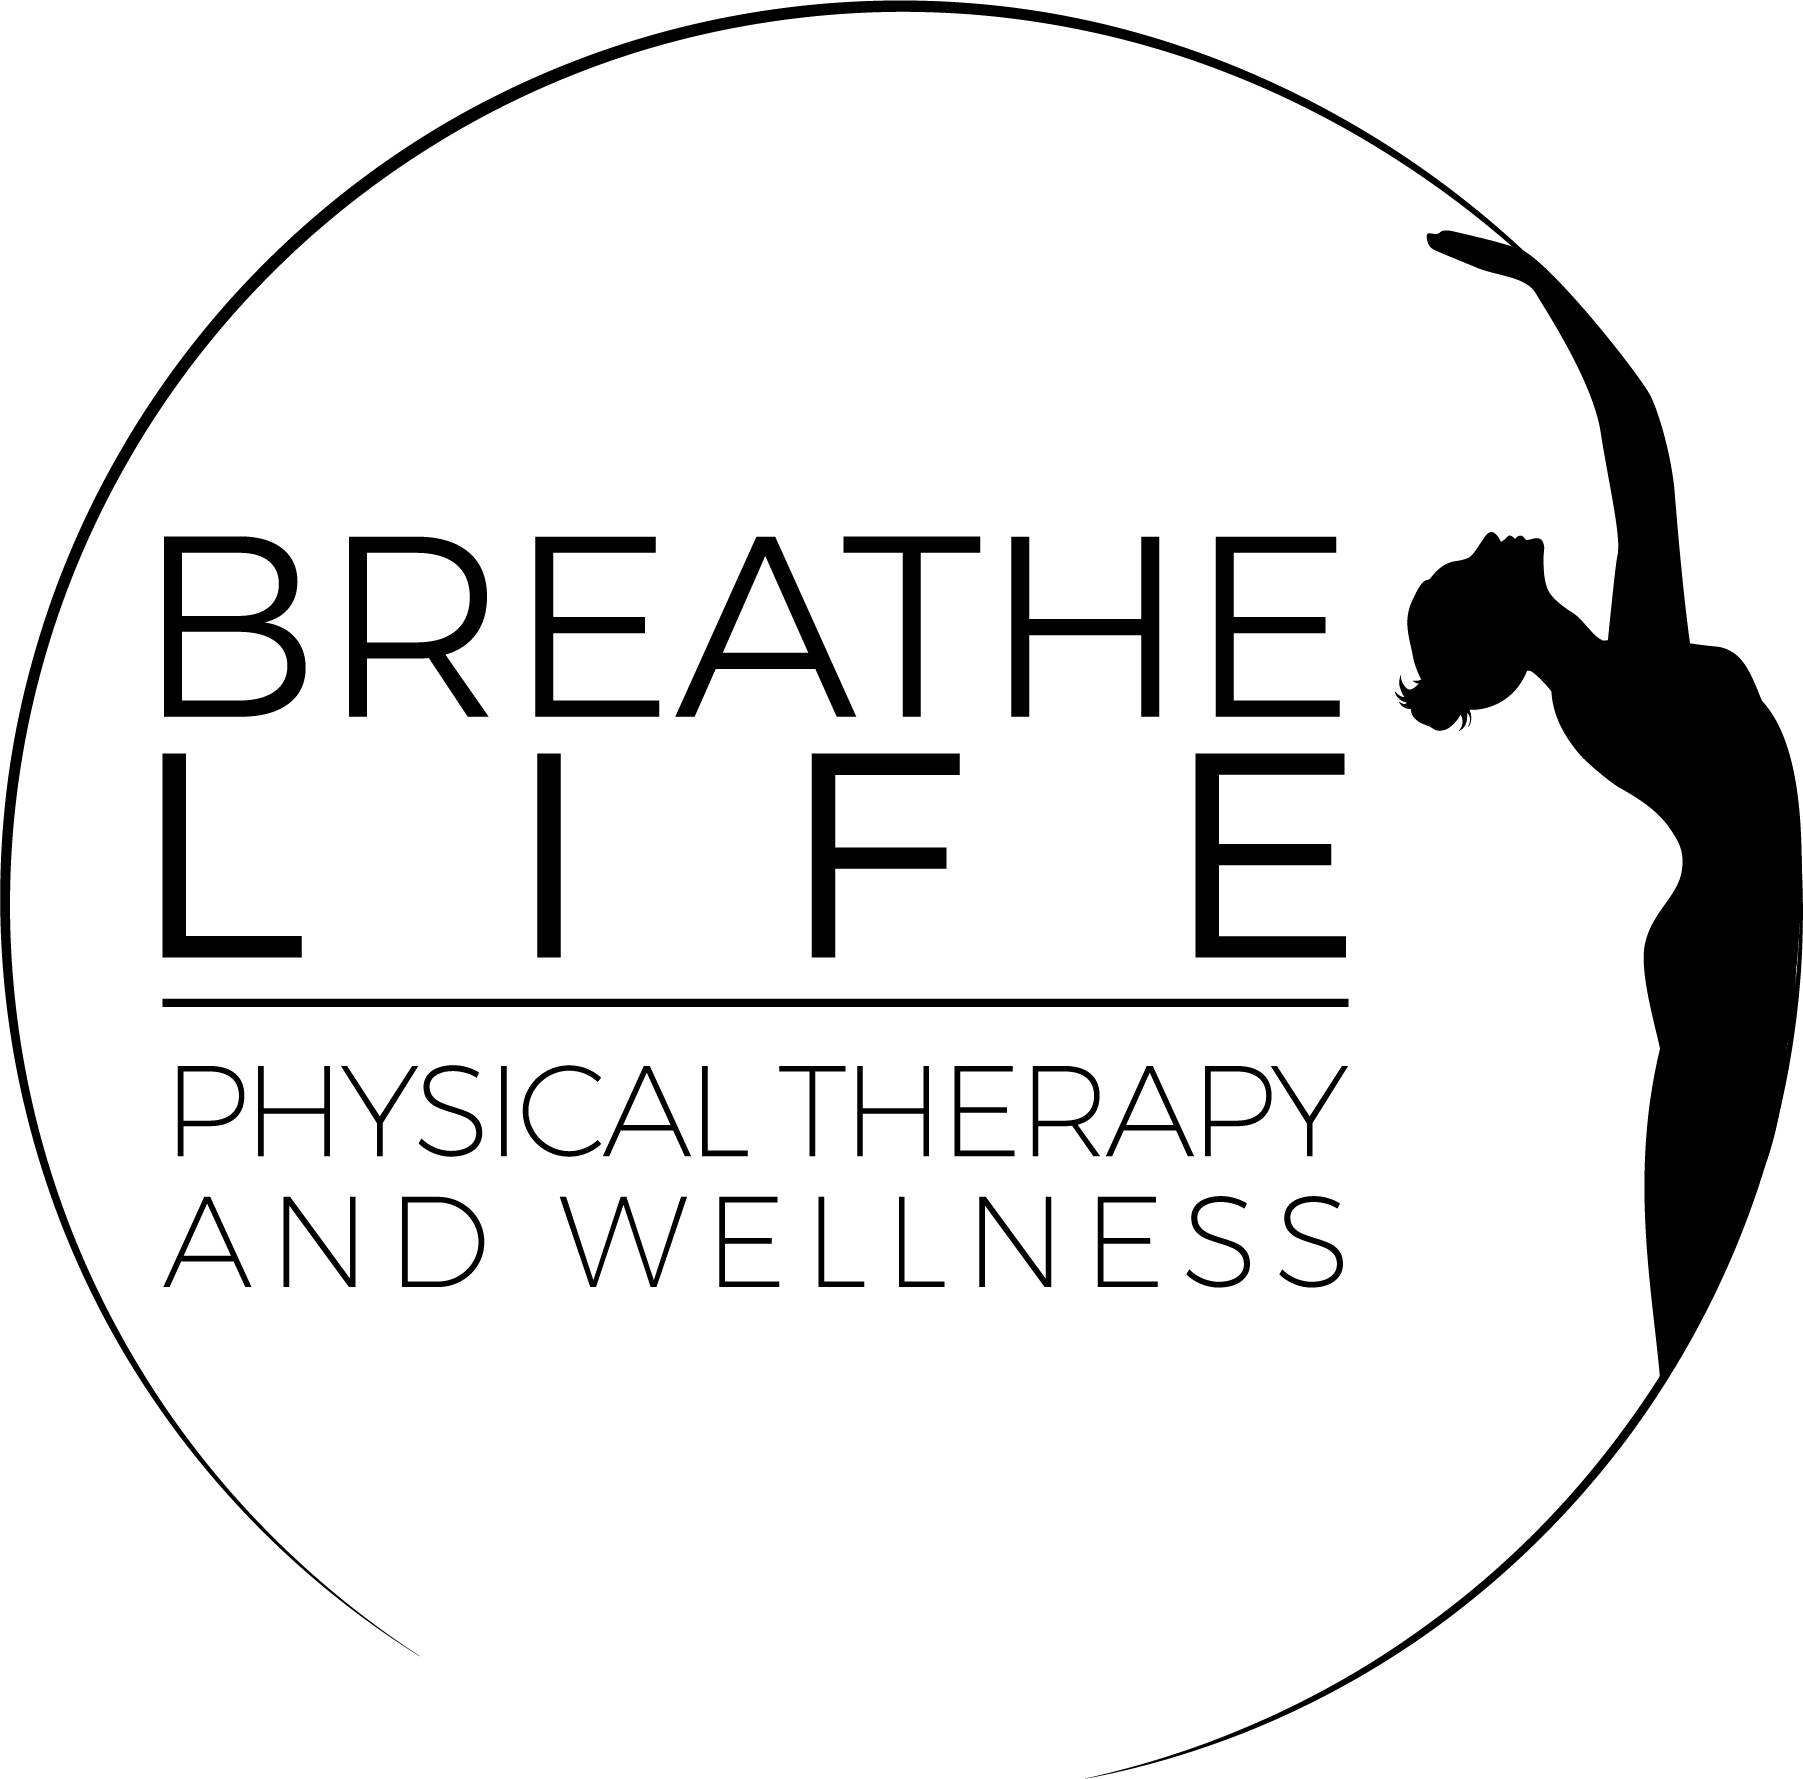 Dr. Amanda Heritage, PT, DPT, PRPC, Breathe Life Physical Therapy & Wellness